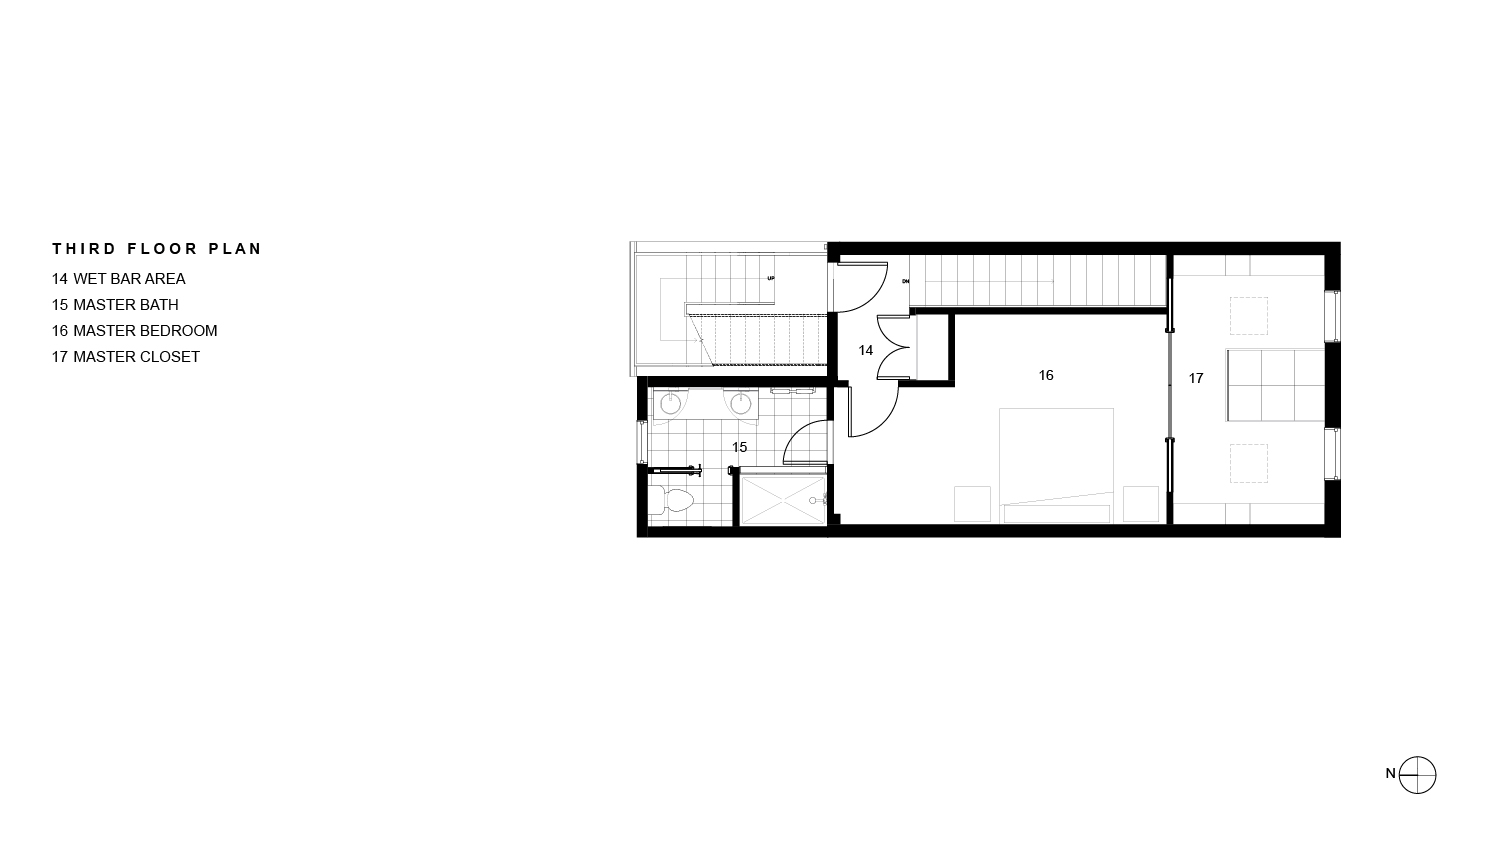 RPA Sabatino 17th Third Floor Plan 010318 01